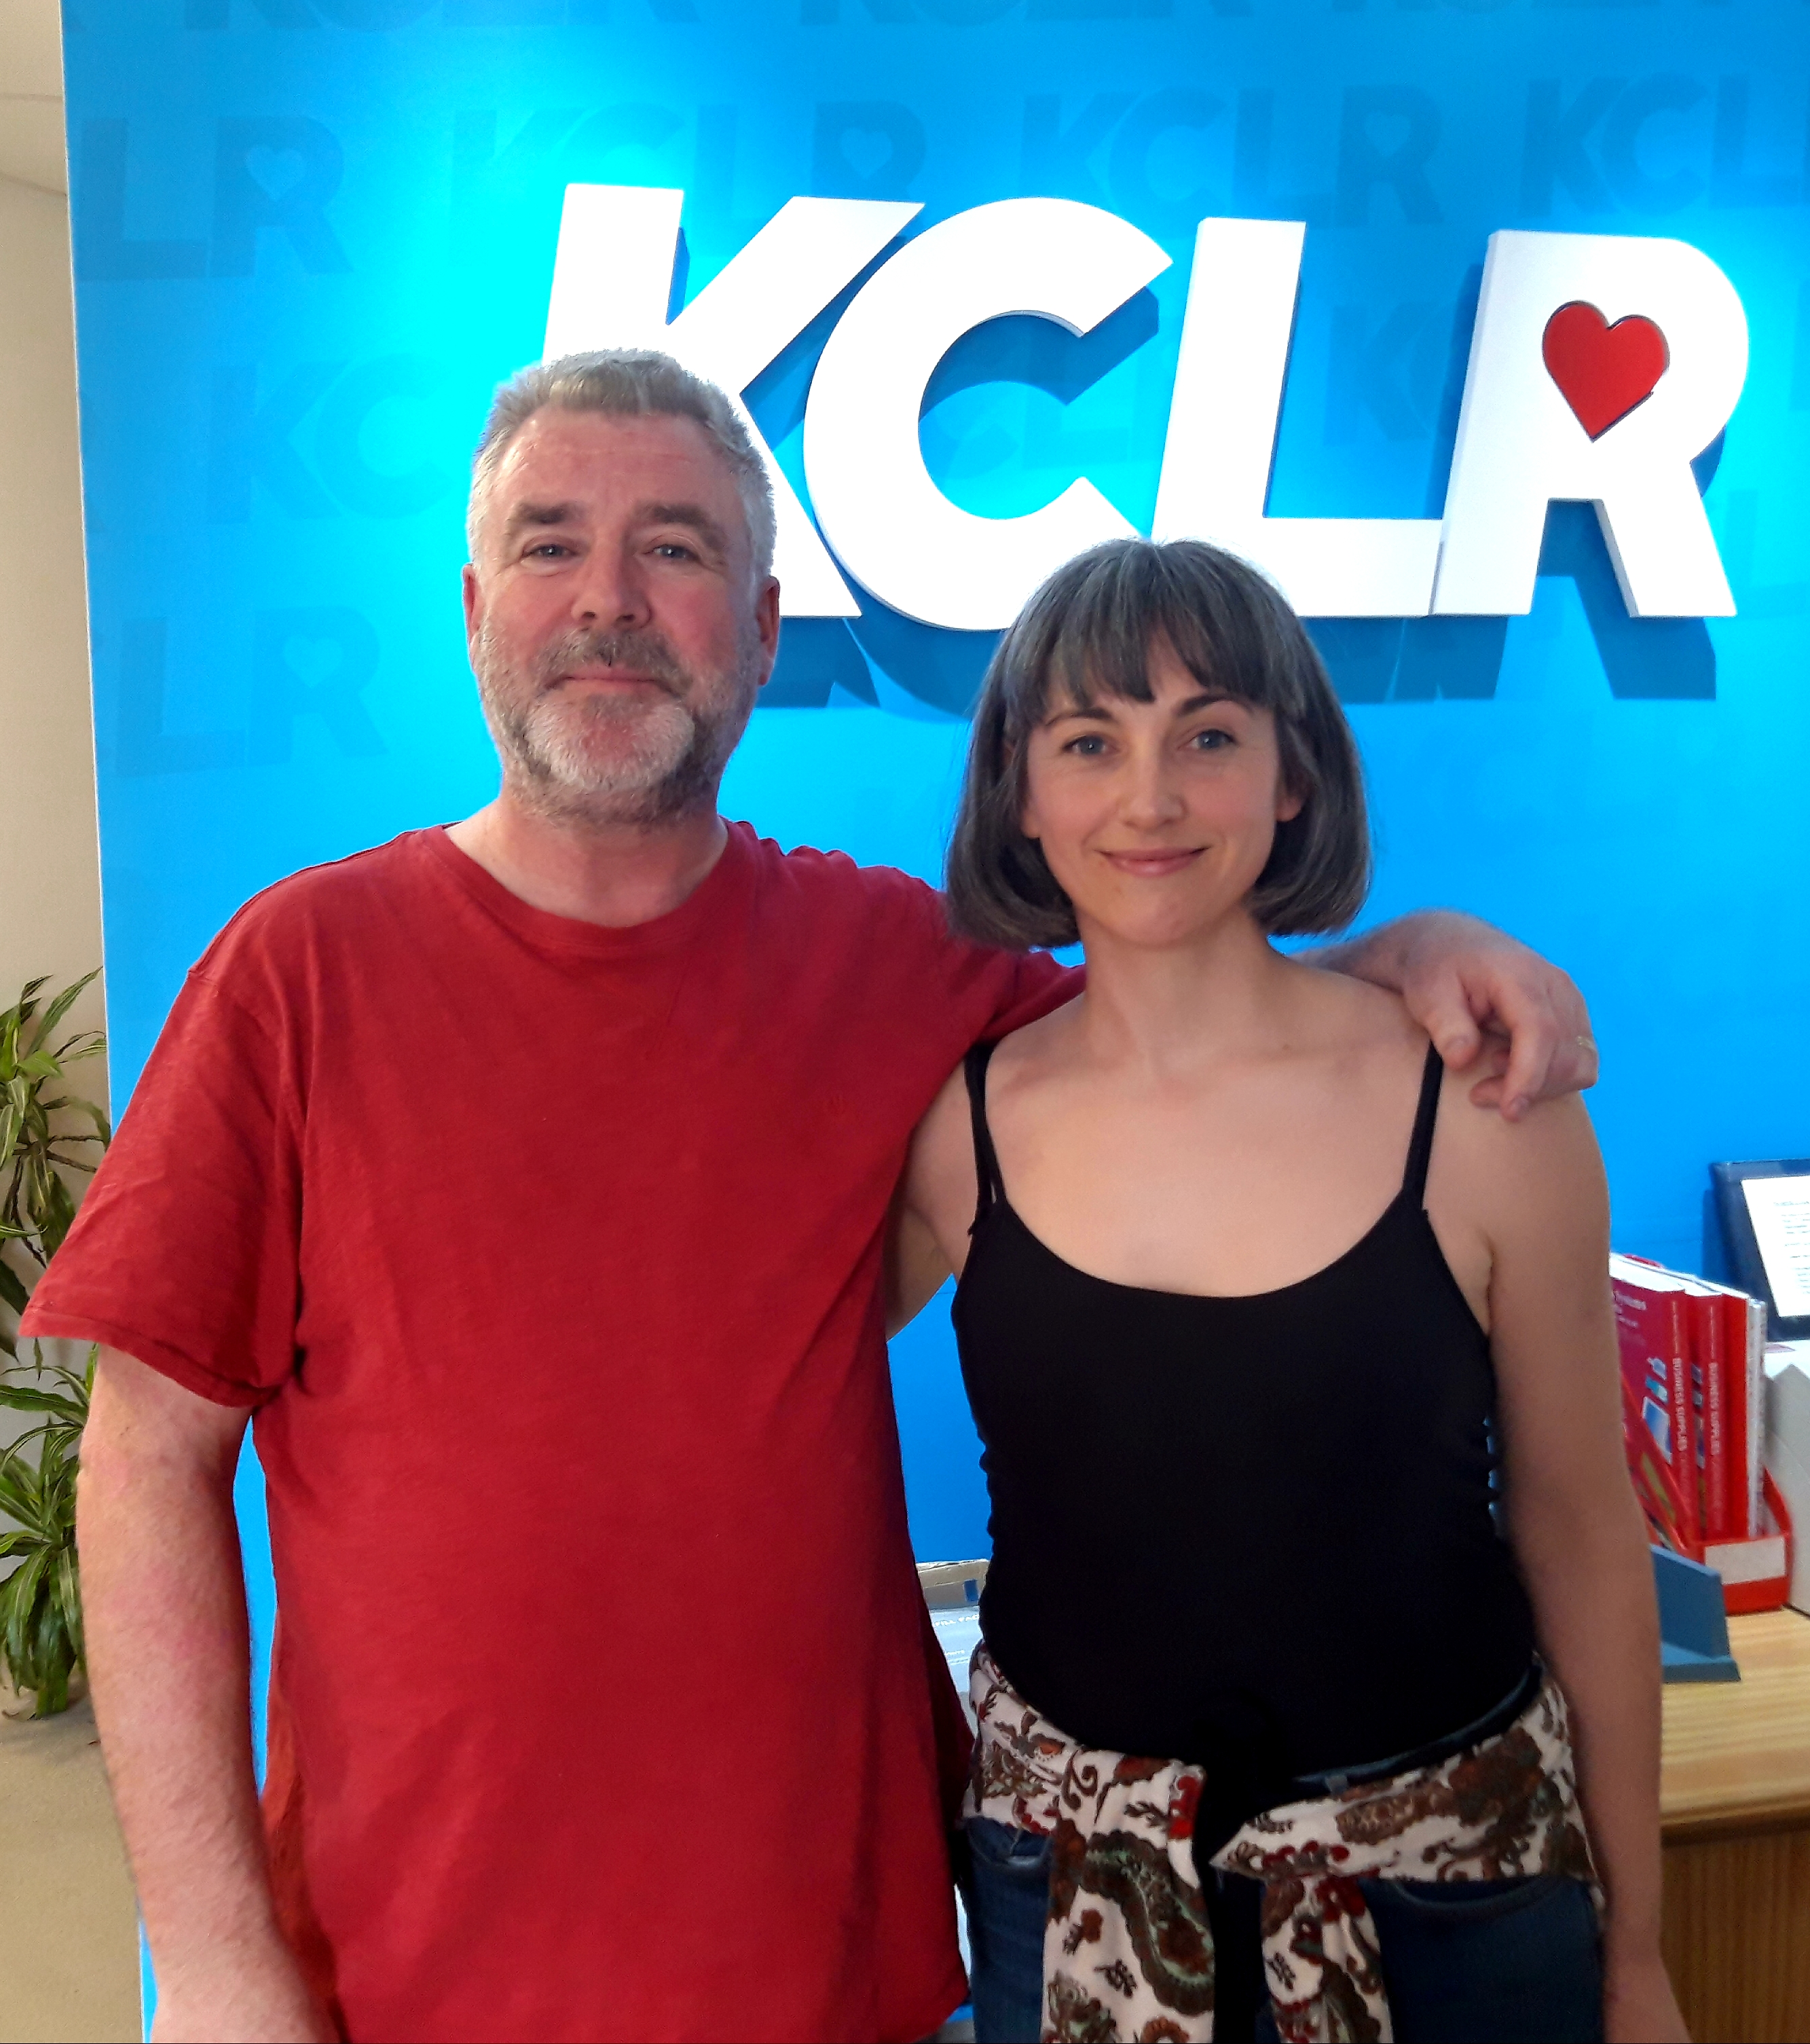 Martin Bridgeman in conversation with Irish songwriter and performer Inni K for a Studio 2 Session for Ceol Anocht on KCLR